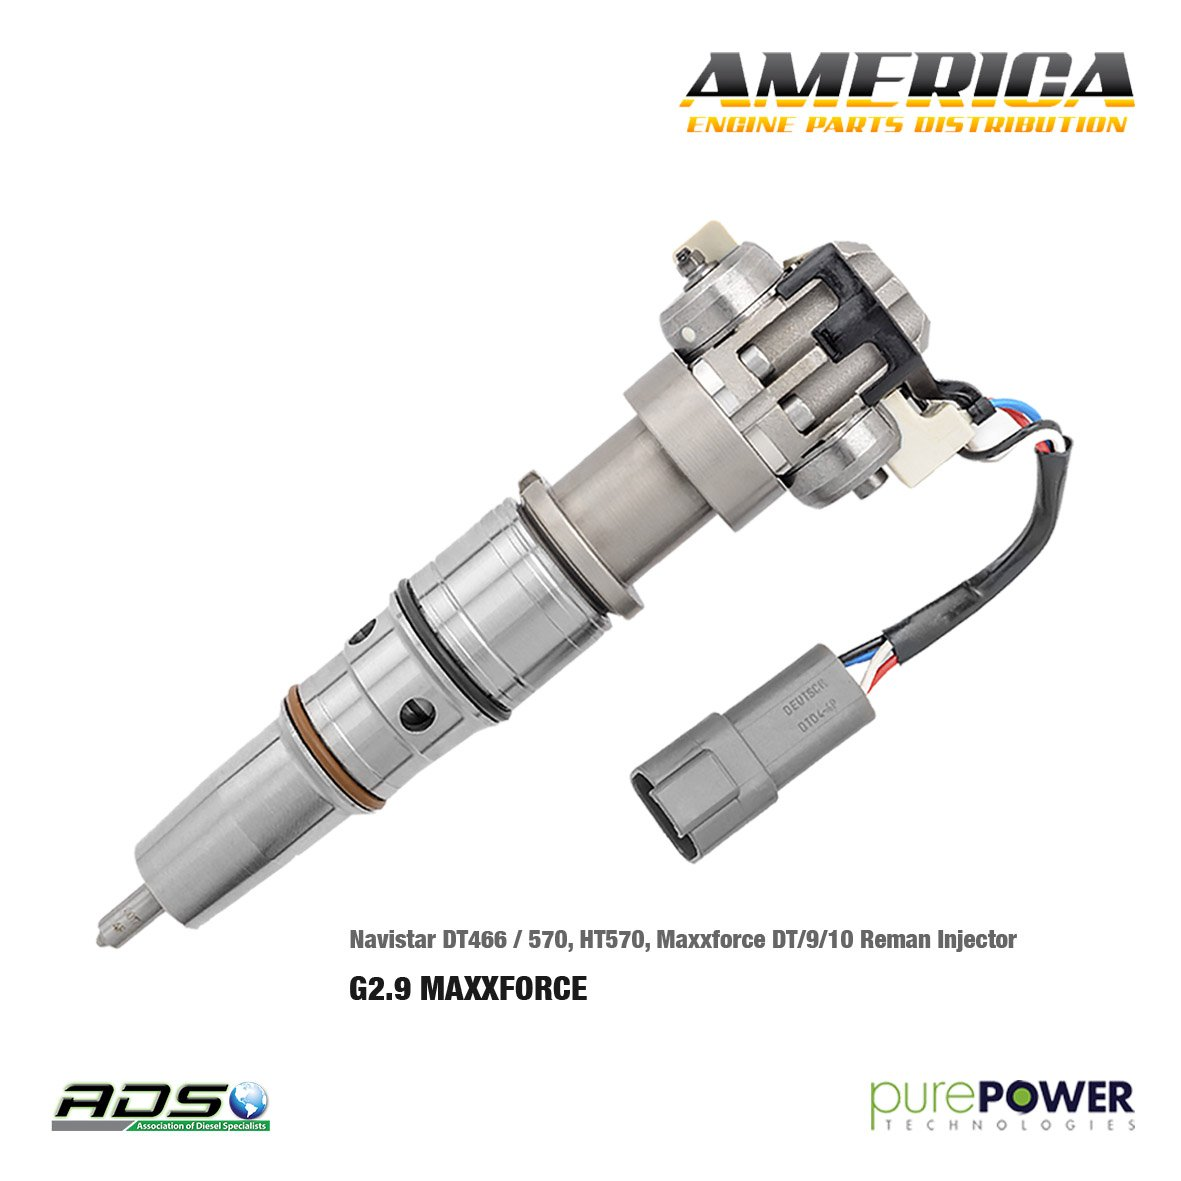 Maxiforce New Products Diesel Engine Parts T Maxxforce 13 Component Diagram Fuel Injector Navistar Dt466 570 Ht570 Dt 9 10 By Purepower Technologies 250usd W Core Exchange Buy On Line